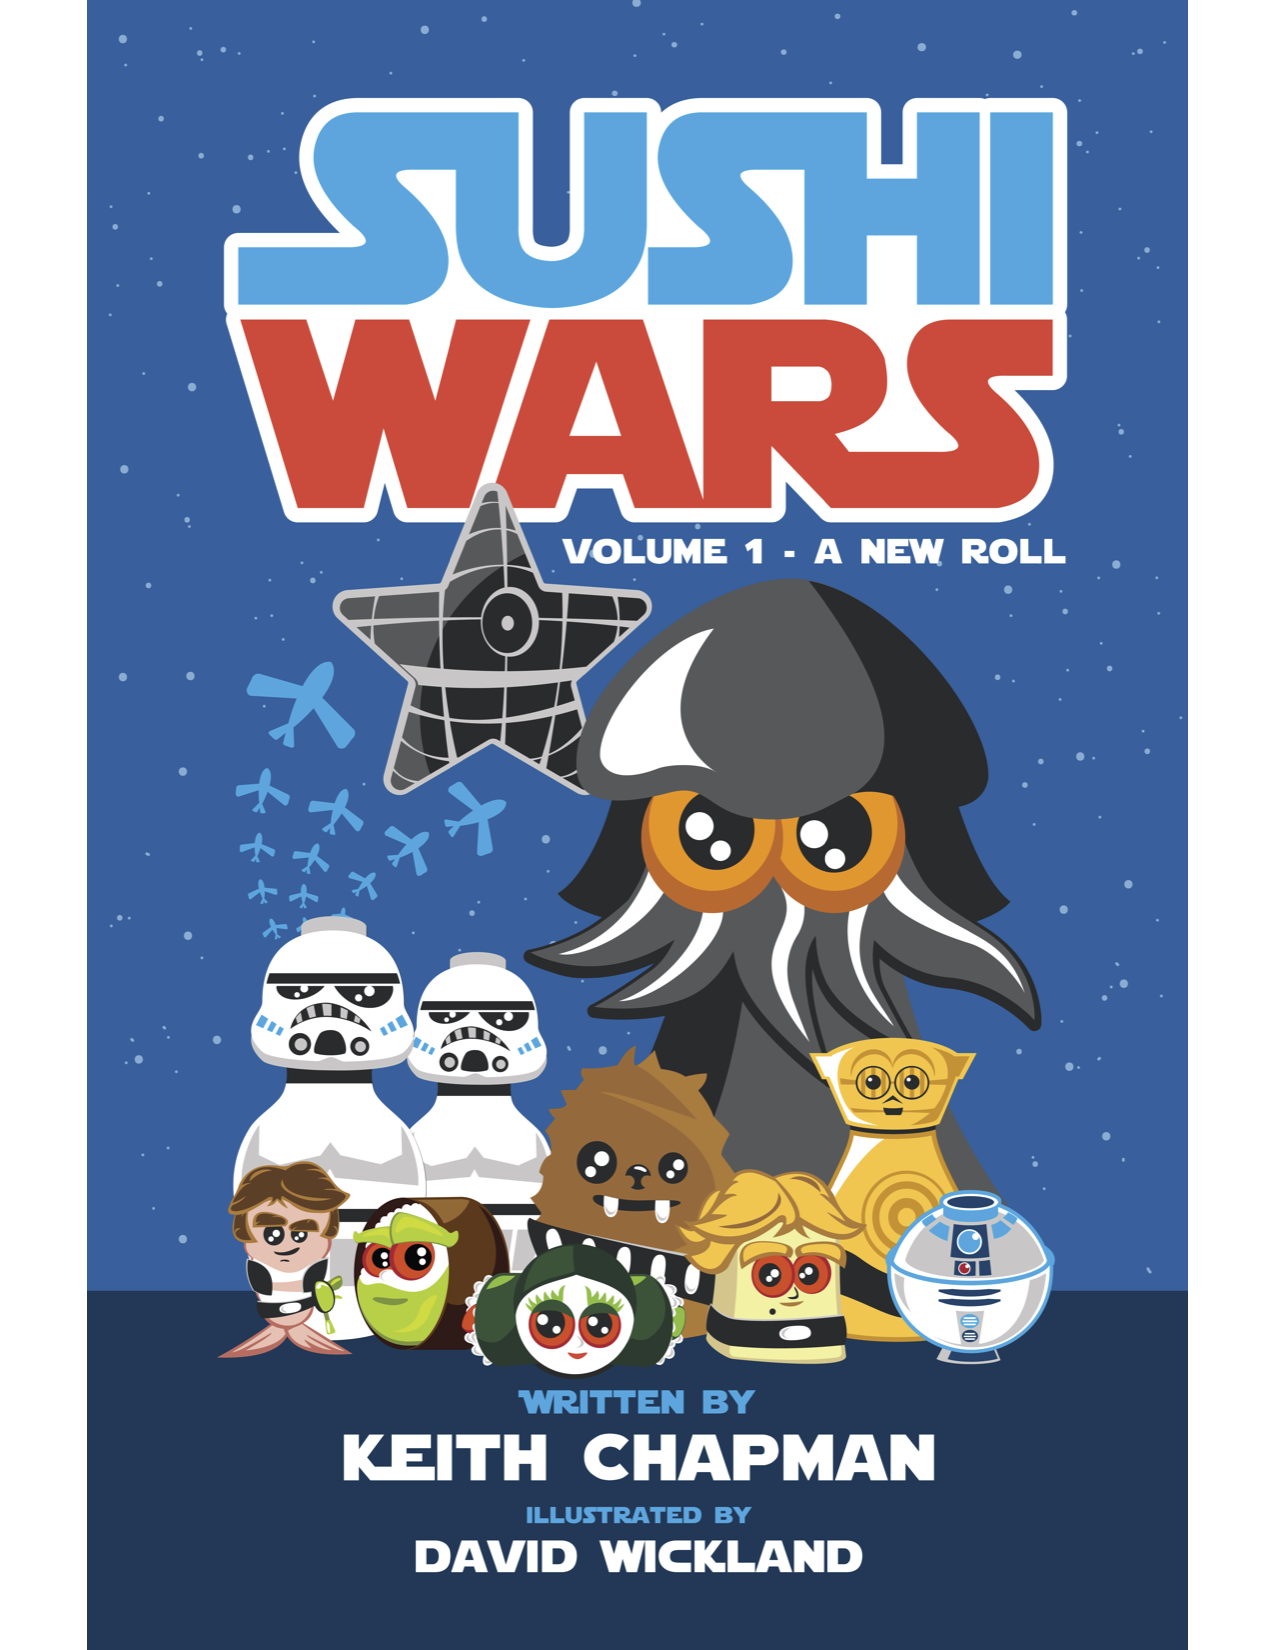 Sushi wars: a new roll